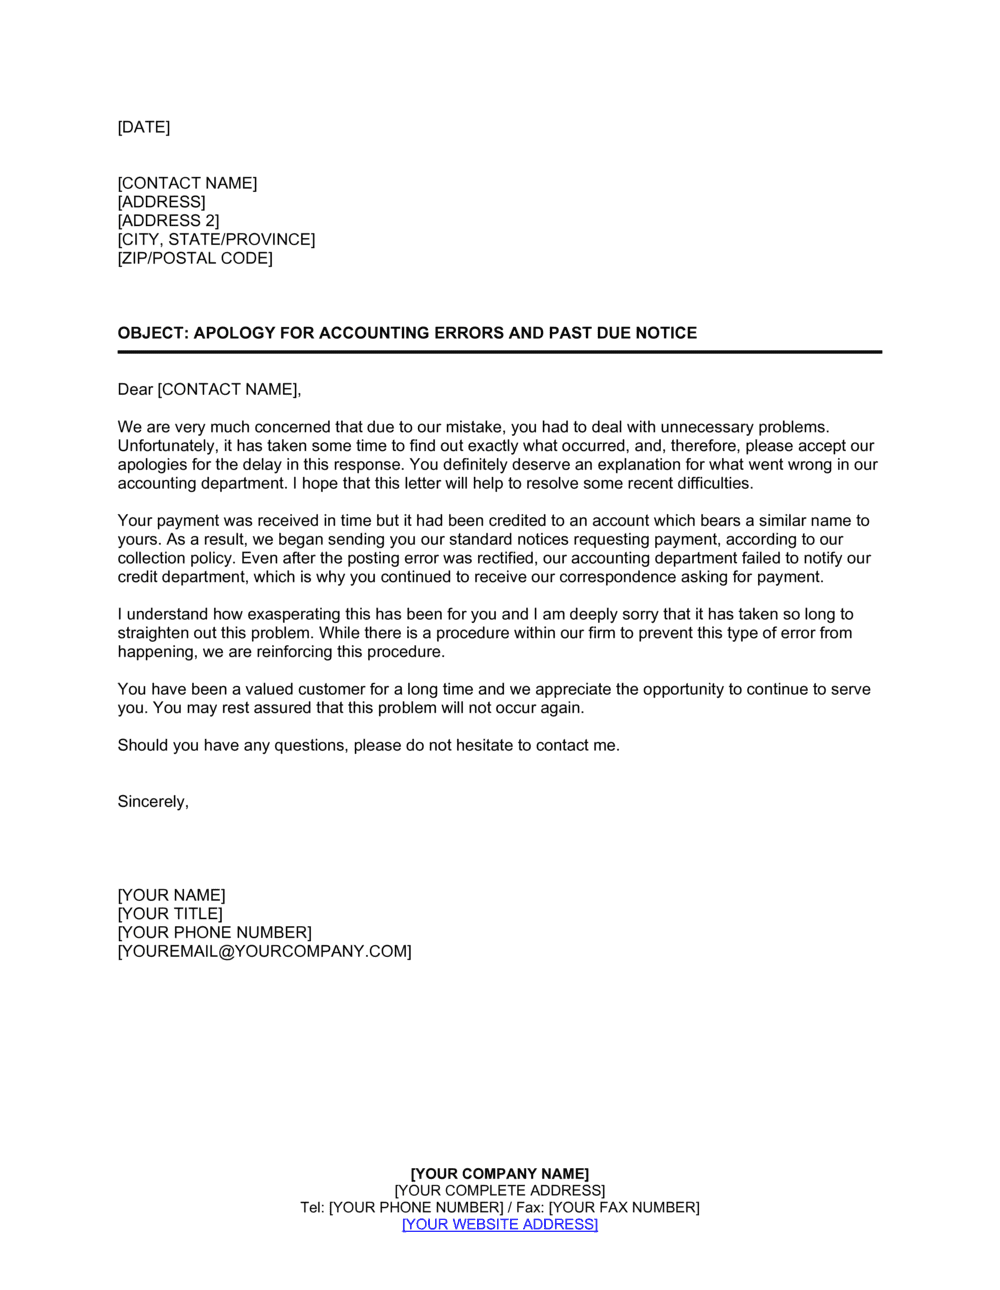 Business-in-a-Box's Apology for Accounting Errors and Past Due Notice Template